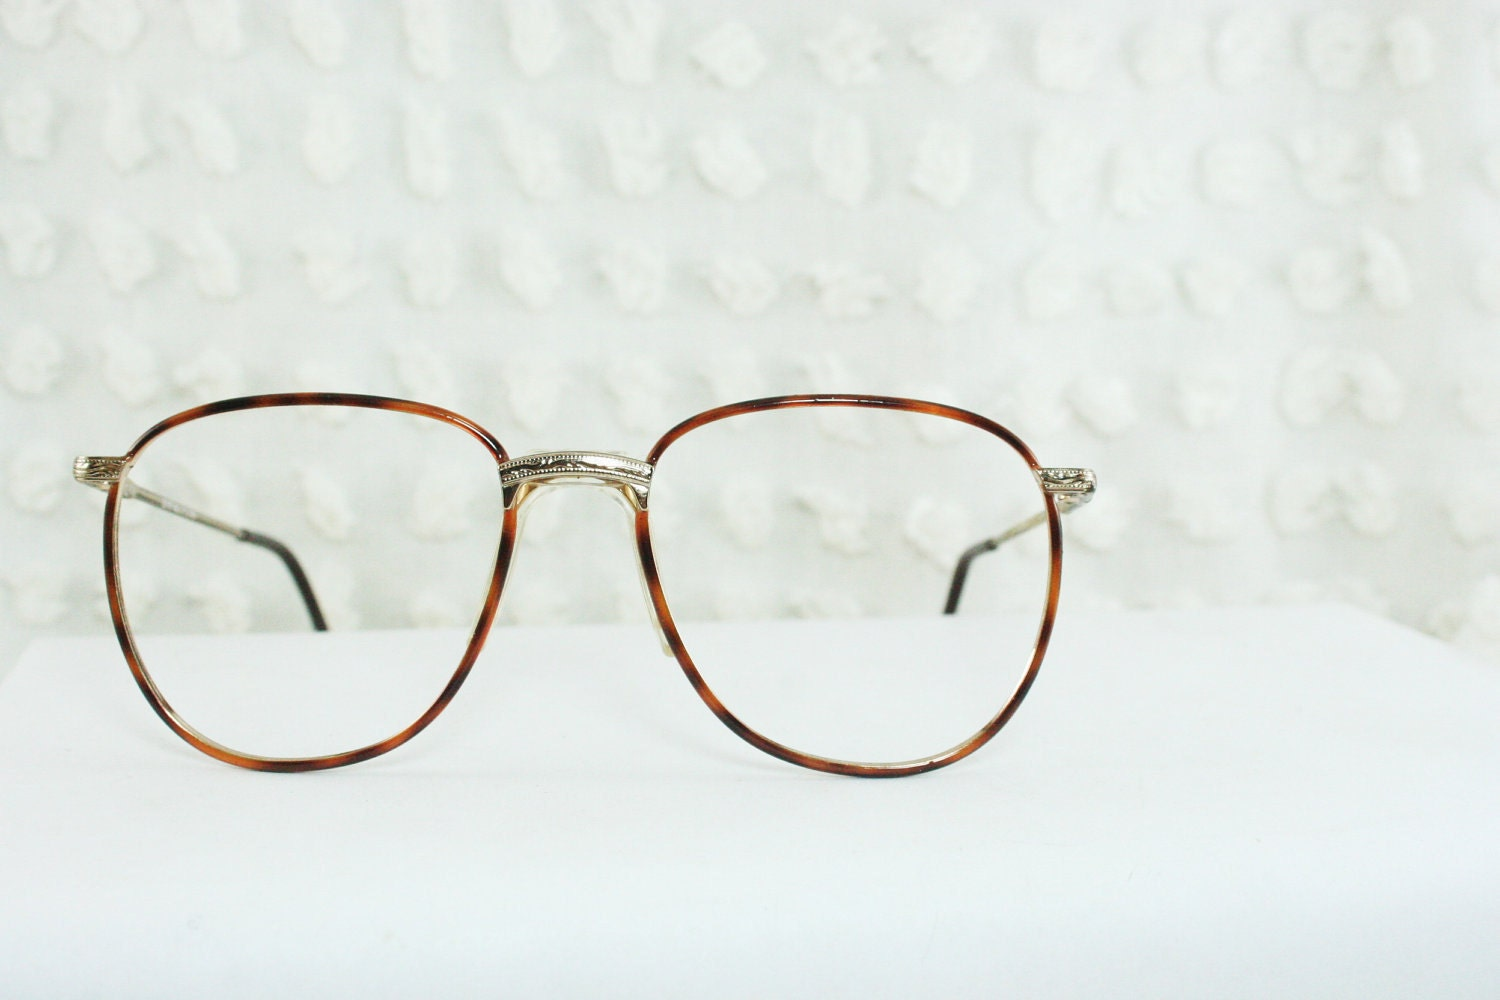 Big Wire Frame Glasses : 1990s Oversize Eyeglasses Tortoise Gold Wire Rim by ...